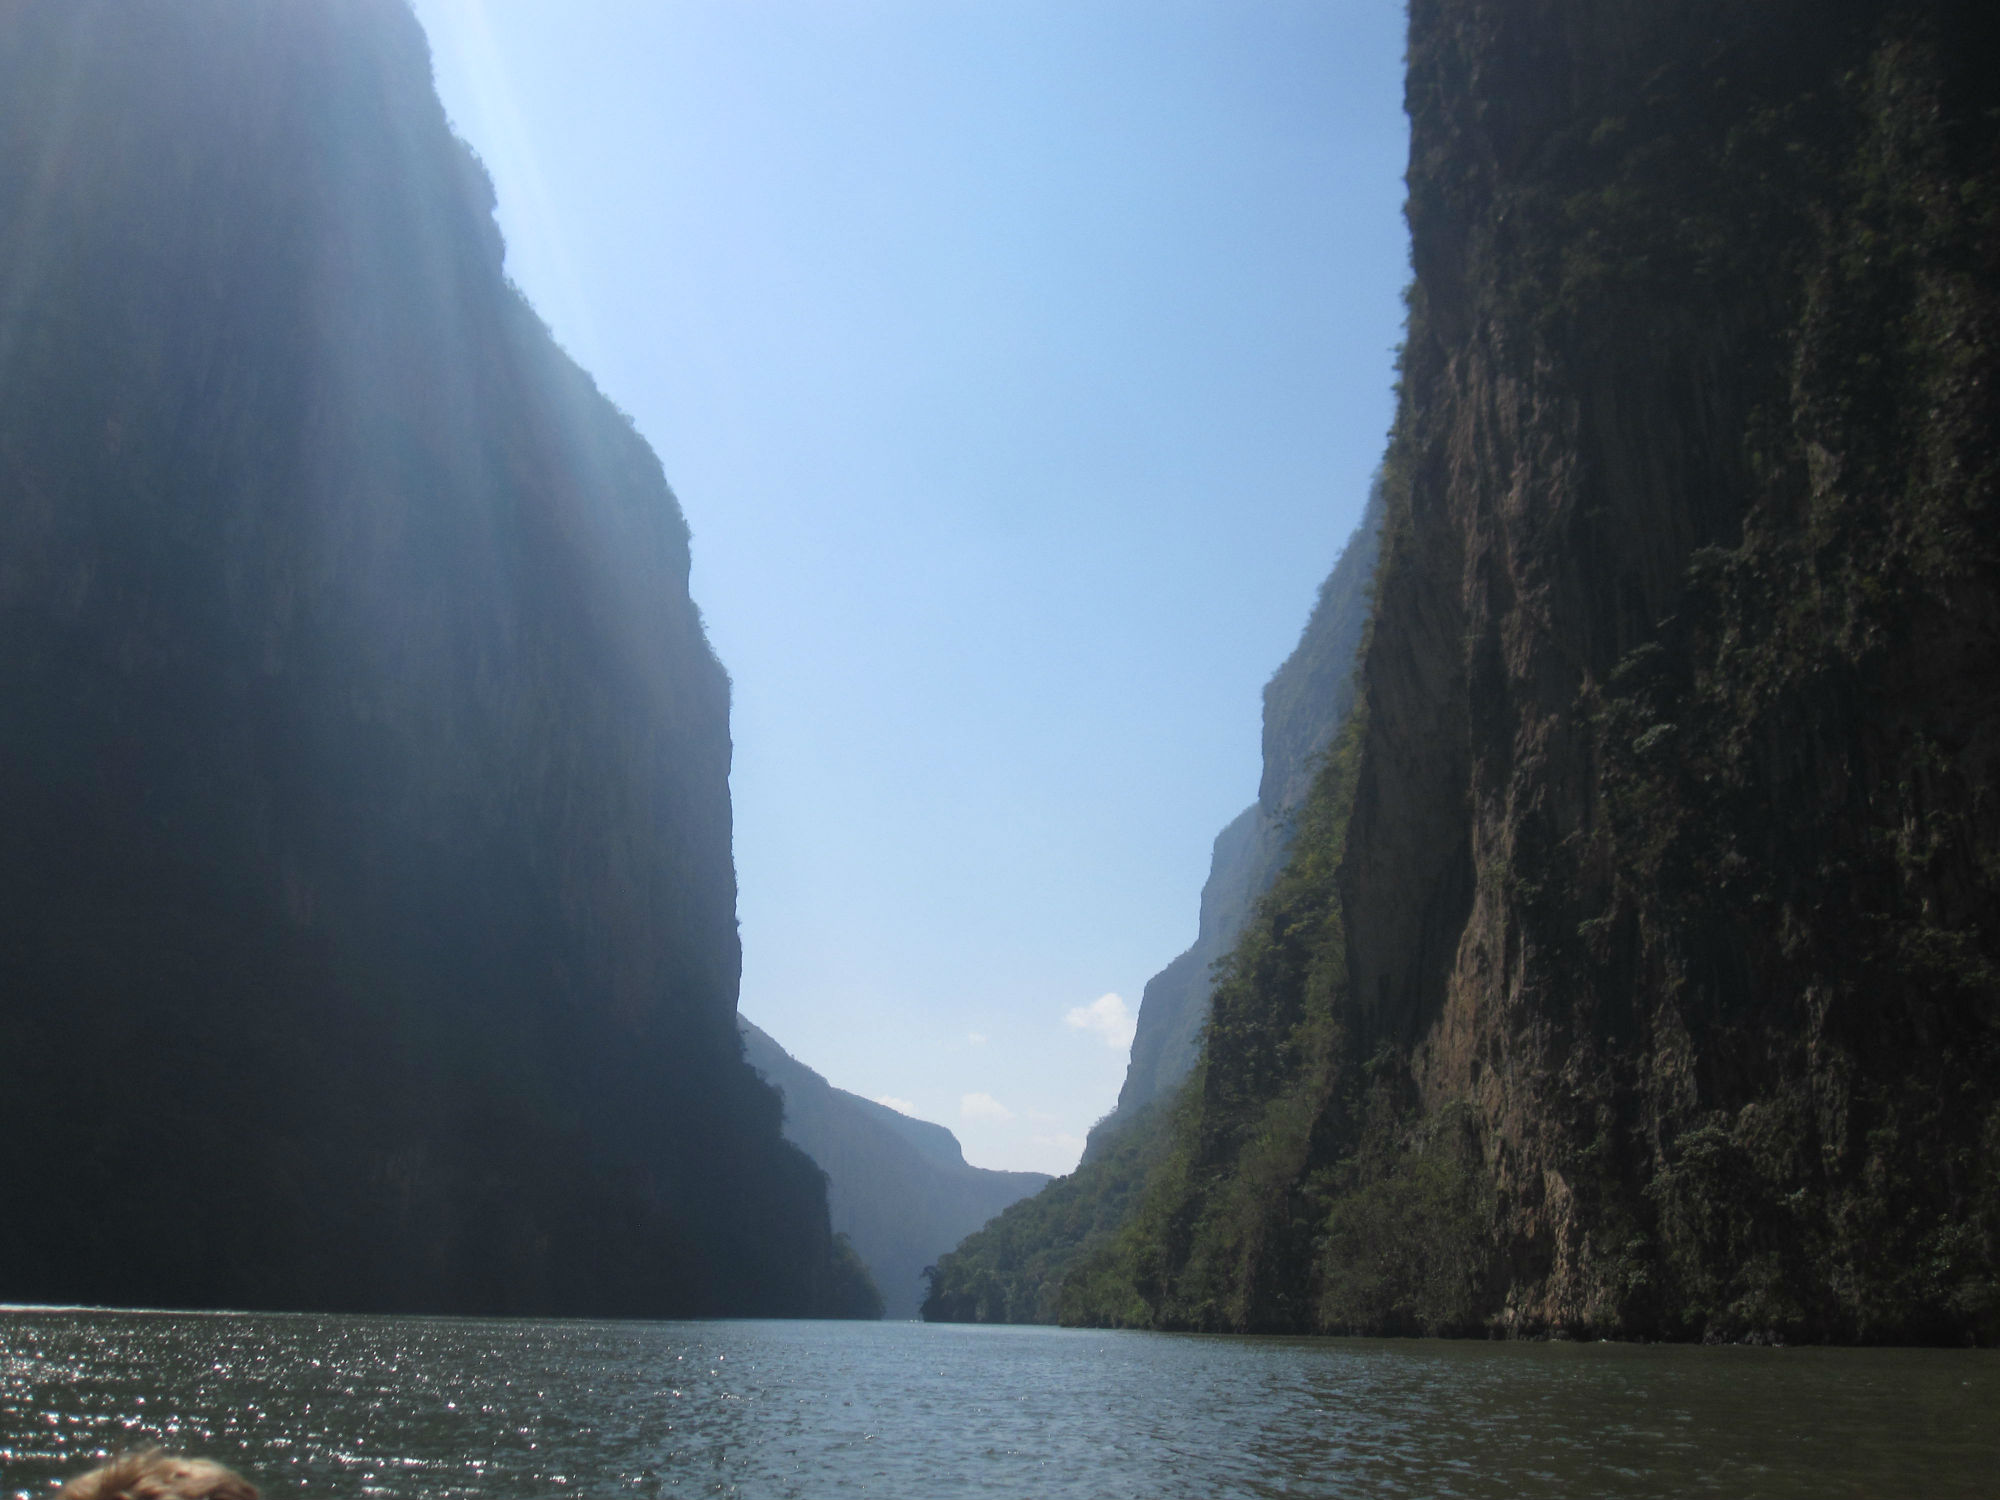 Sumiderokanjonen! The Sumidero Canyon!